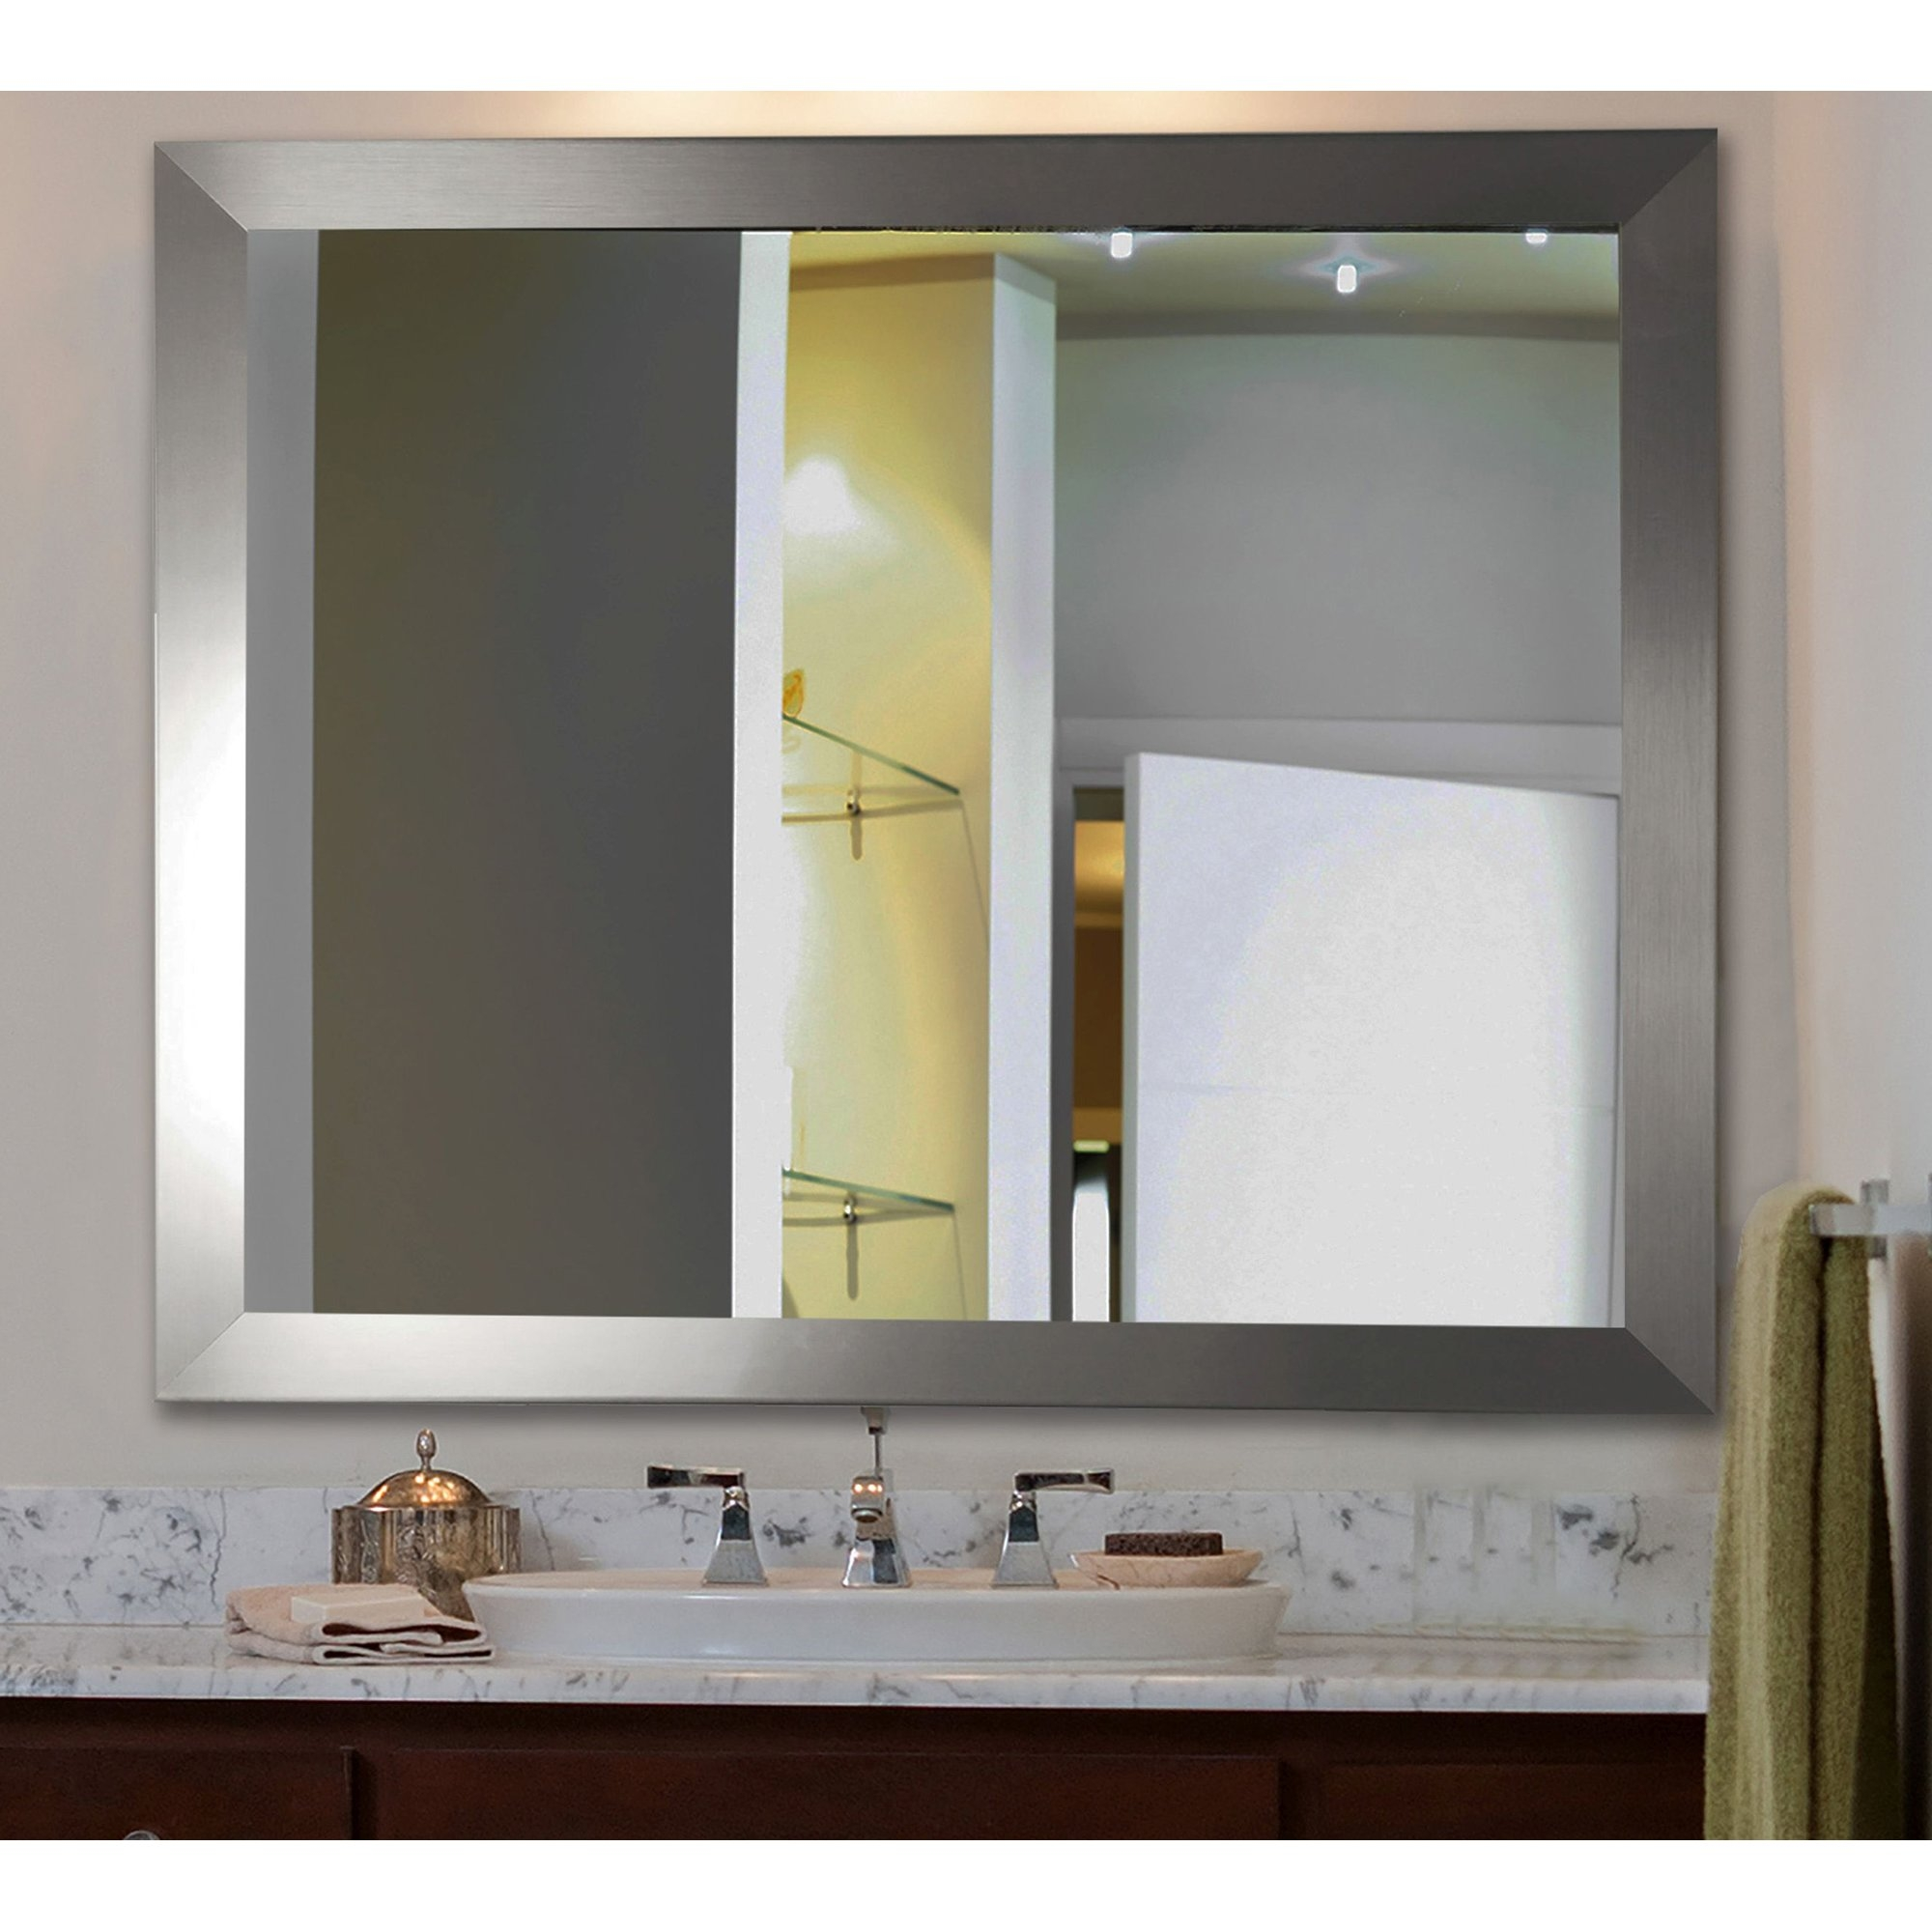 Large Oversized Wall Mirrors Youll Love Wayfair With Oversized Mirrors For Sale (View 15 of 15)